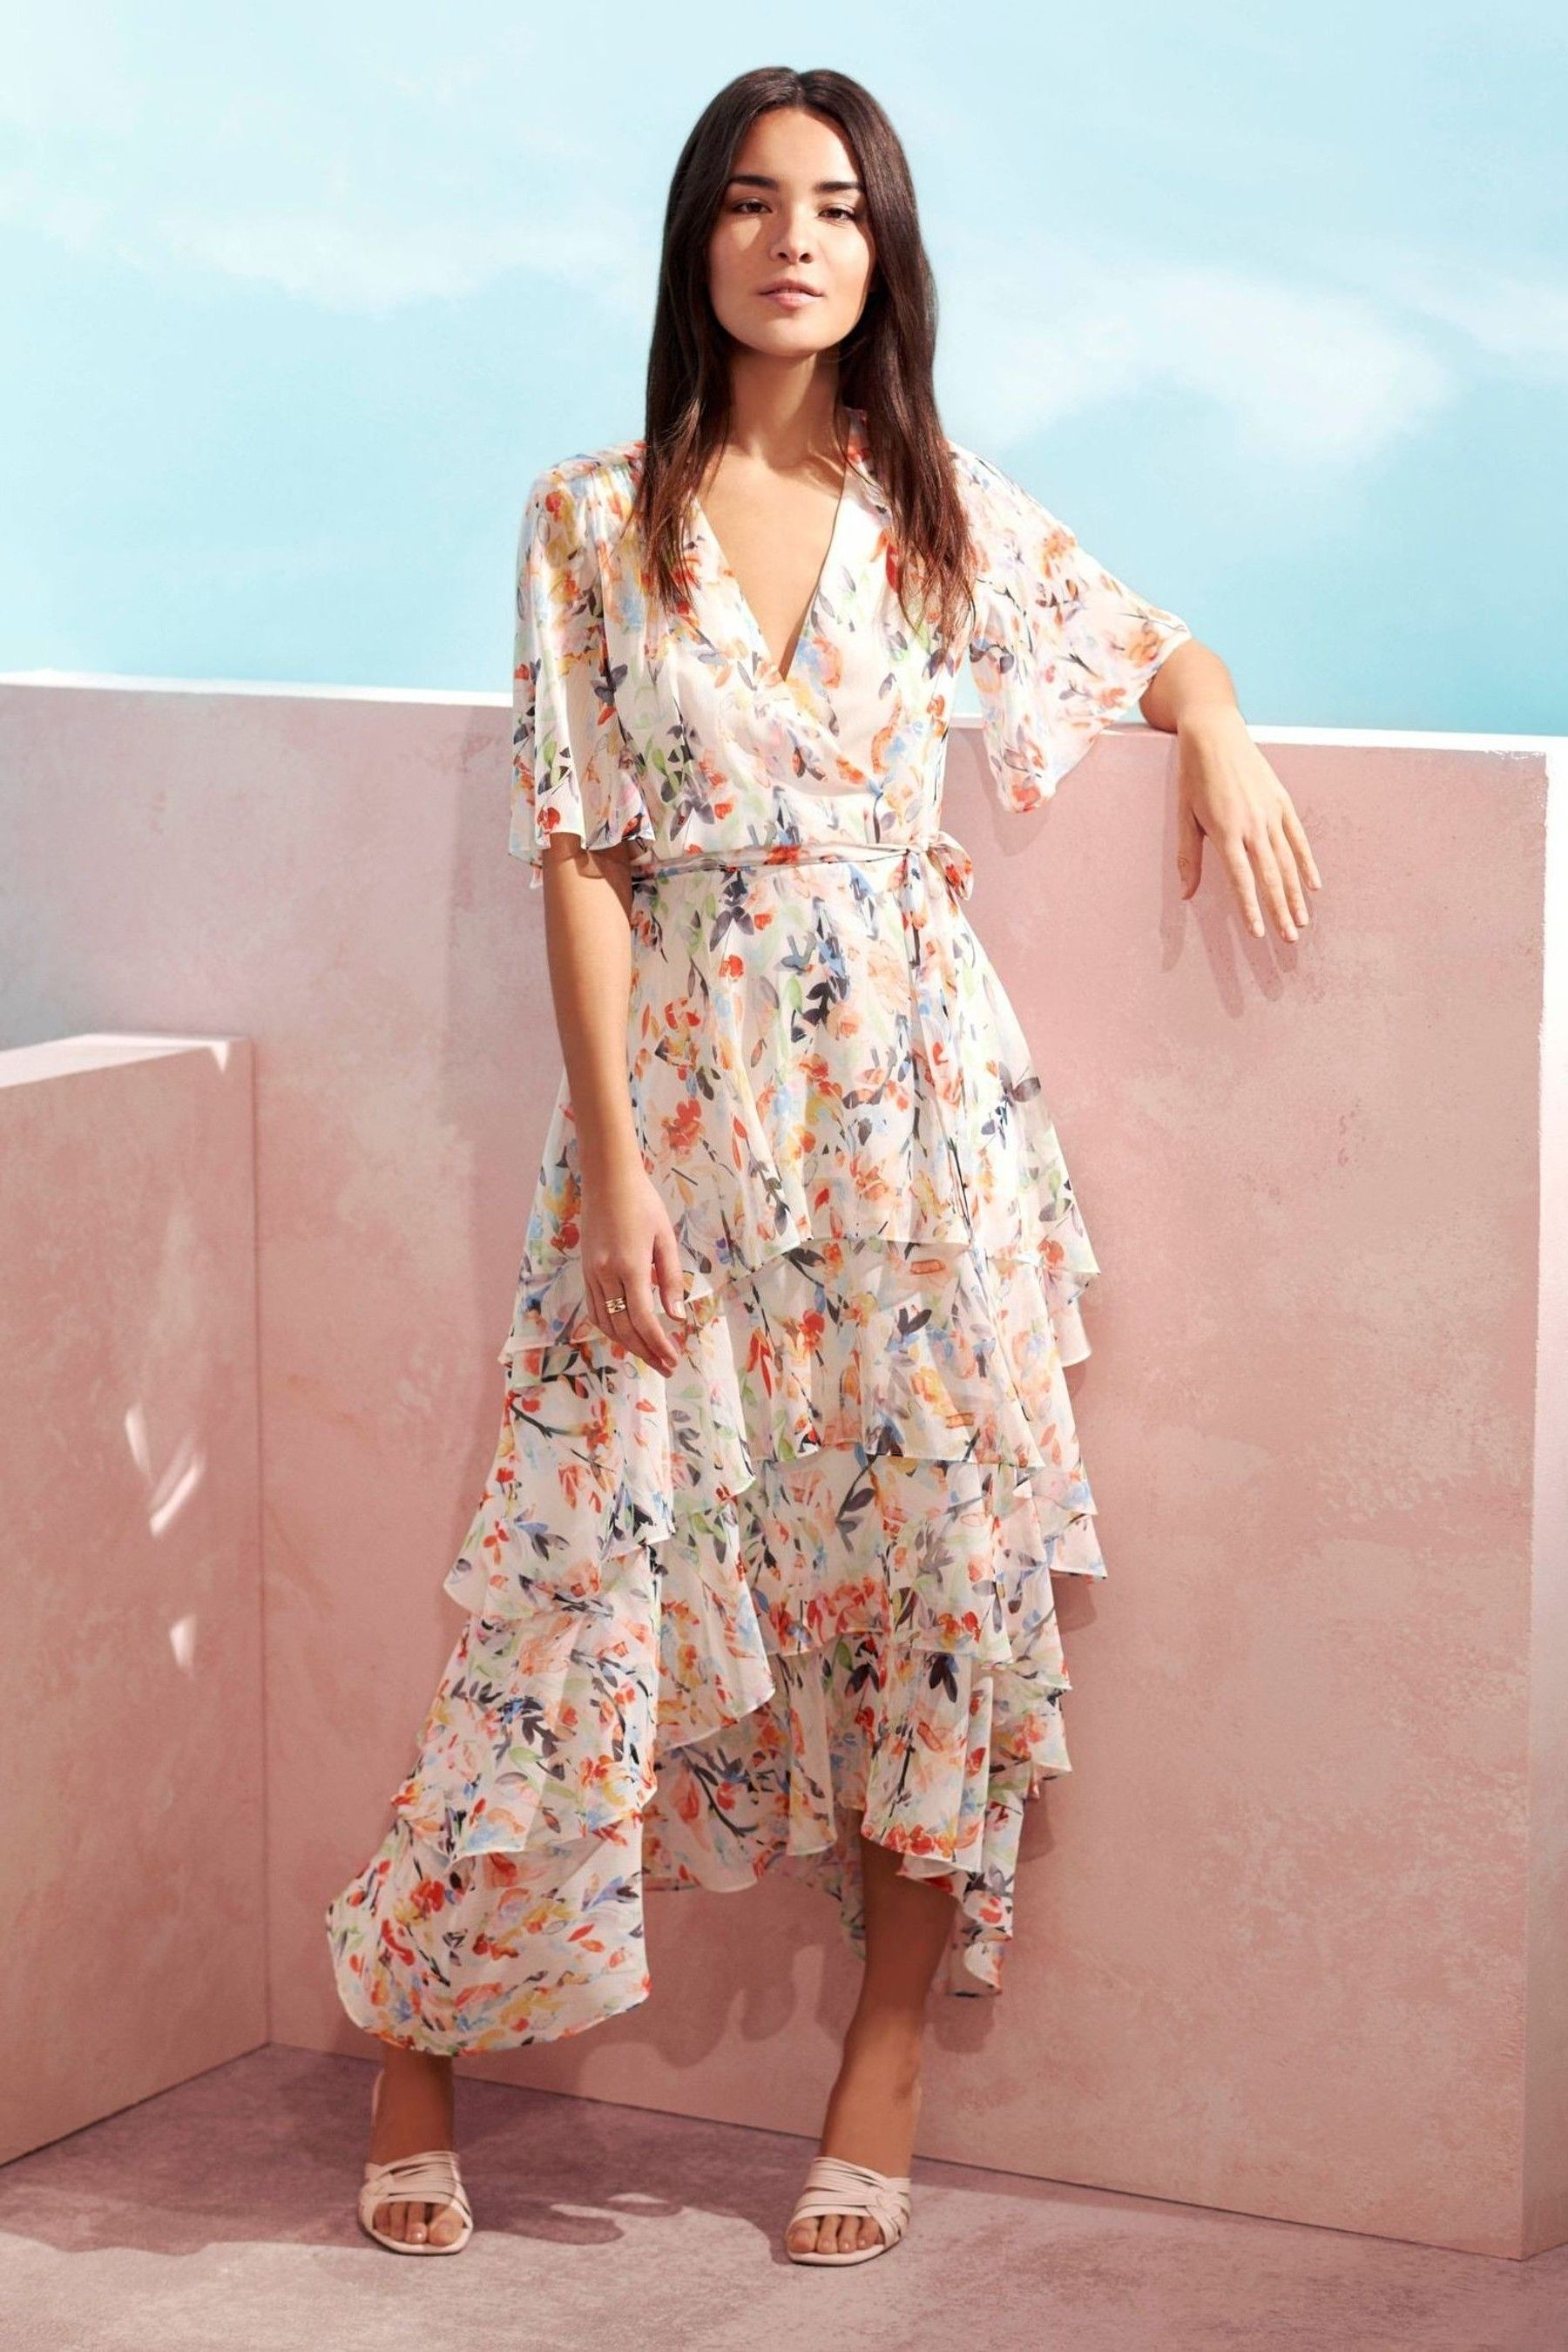 Buy Wallis Watercolour Leaf Tiered Dress From The Next Uk Online Shop In 2020 Tiered Dress Dresses Floaty Maxi Dress